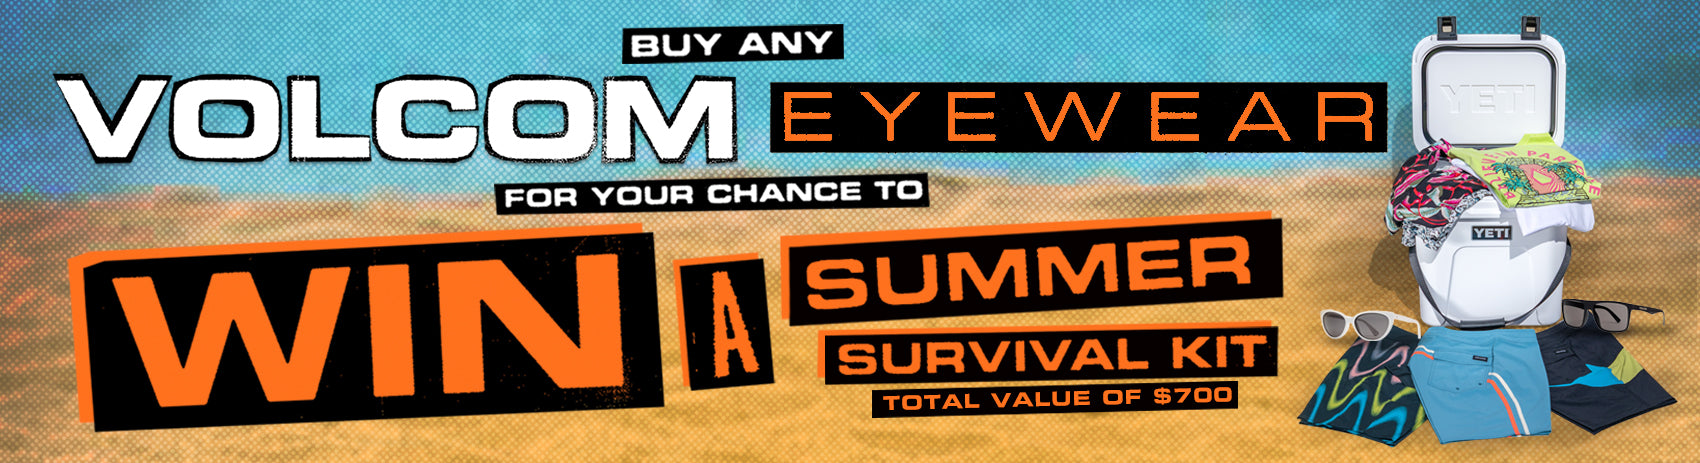 Buy any Volcom Eyewear for your chance to Win a Summer Survival Kit